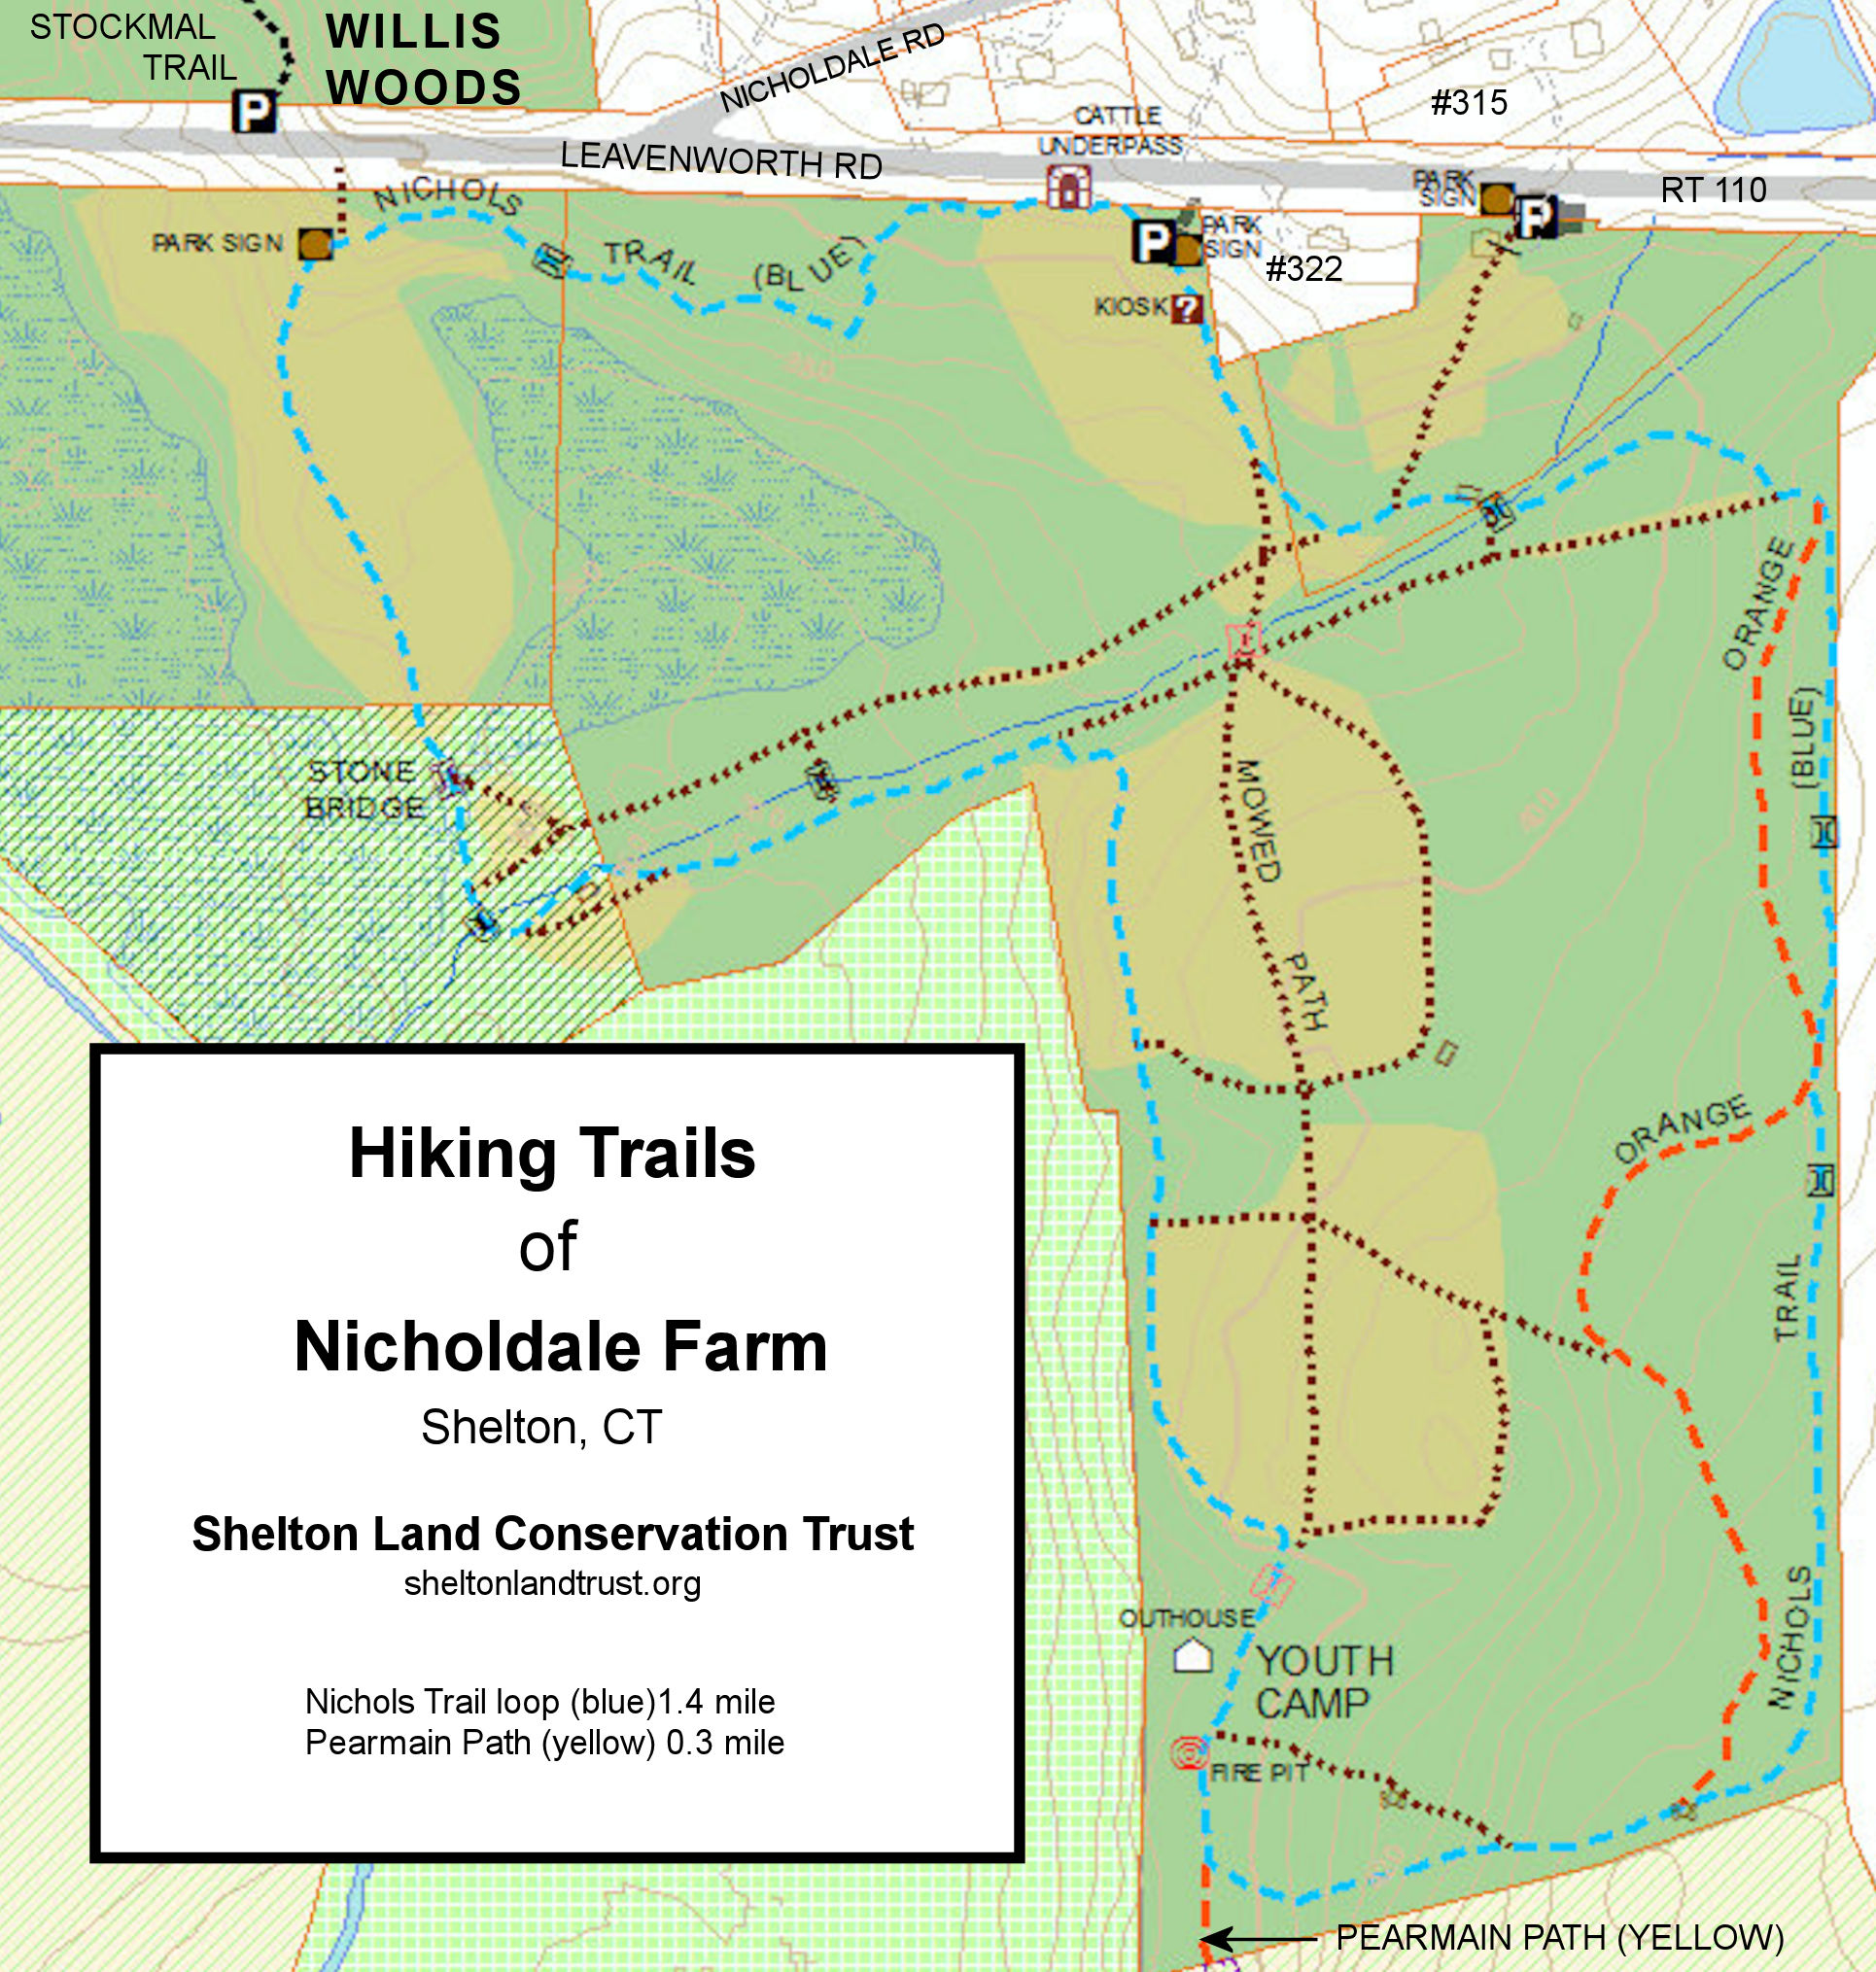 Shelton Trails on places to go map, hiking tours, hunting map, nature map, orienteering map, trail map, following a map, hiking trail, hiking tips, space exploration map, hiking tracks,